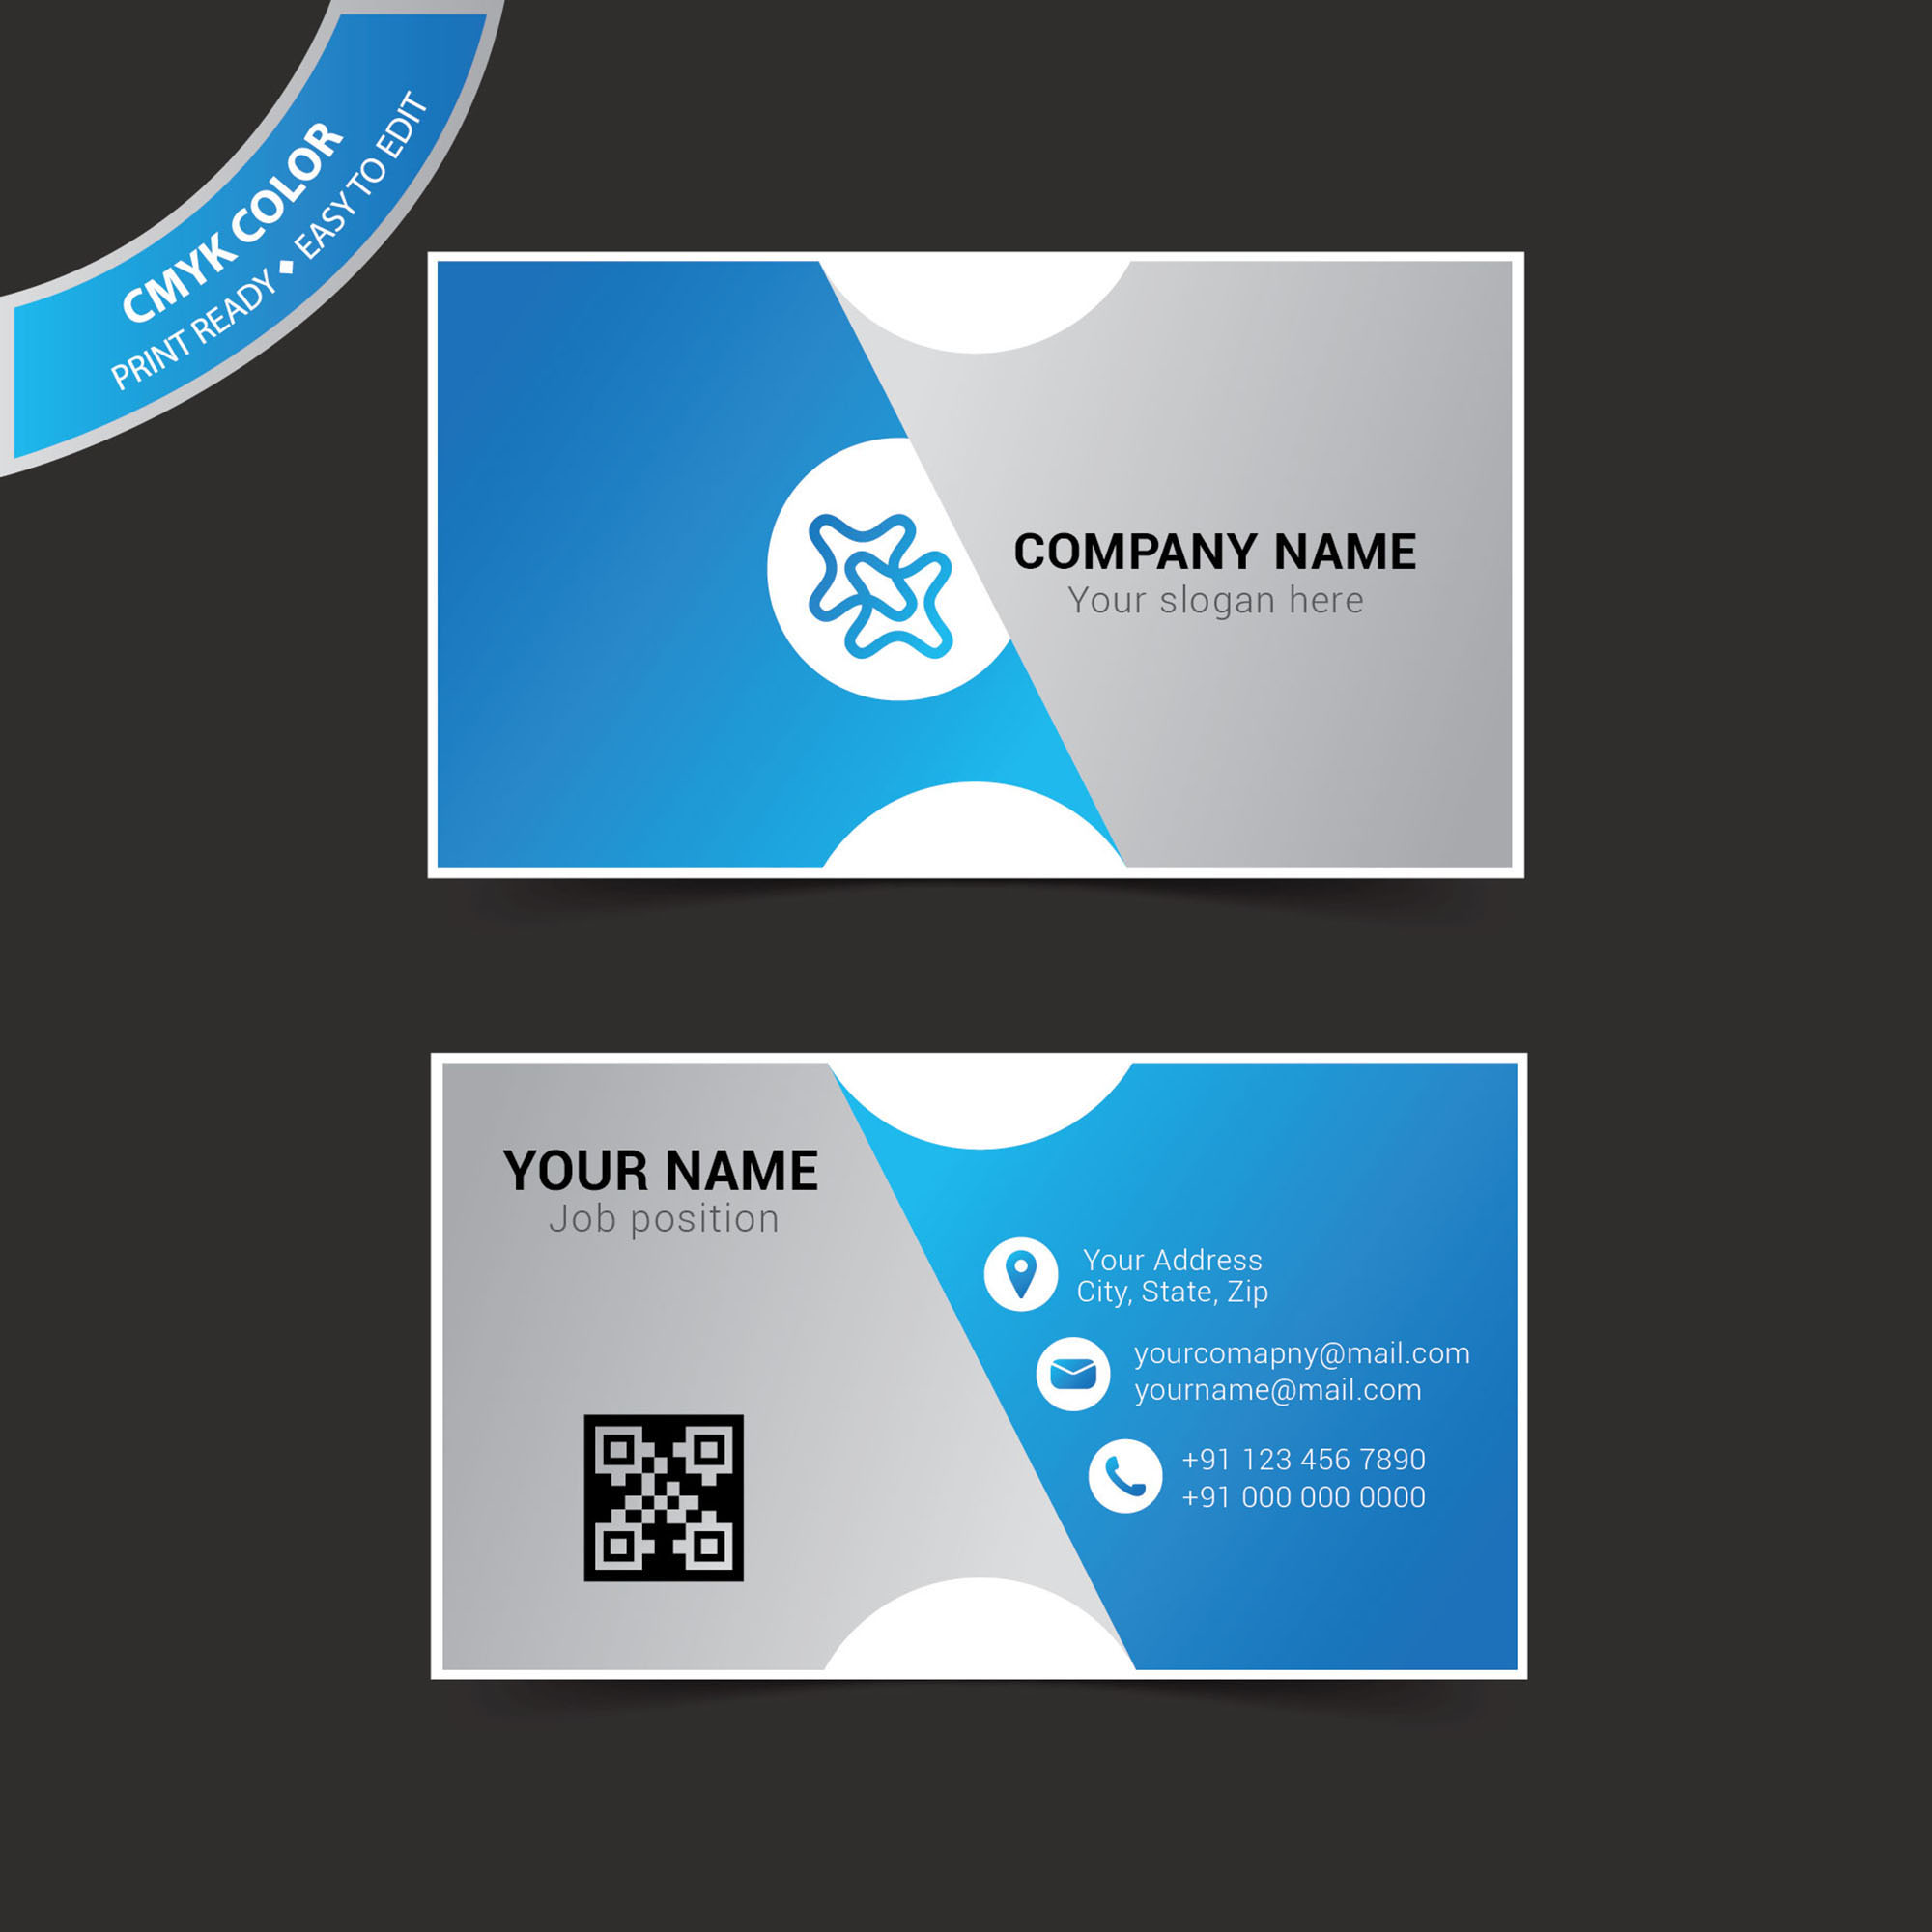 Business card template illustrator free vector wisxi abstract business card design business creative graphic layout template fbccfo Choice Image